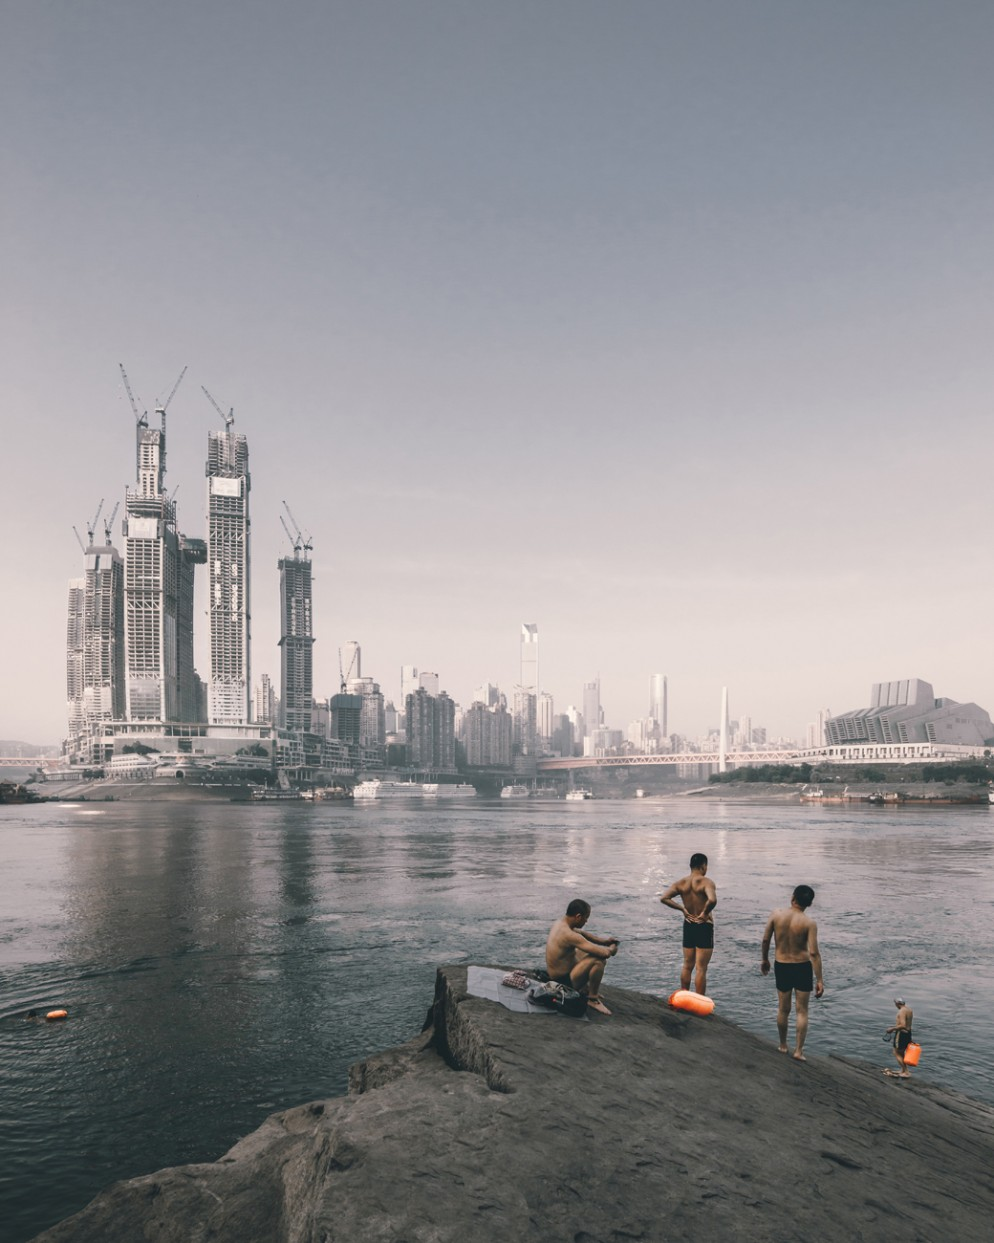 Project: Swimmers on the riverside opposite the construction of Raffles City Chongqing, China by Safdie Architects